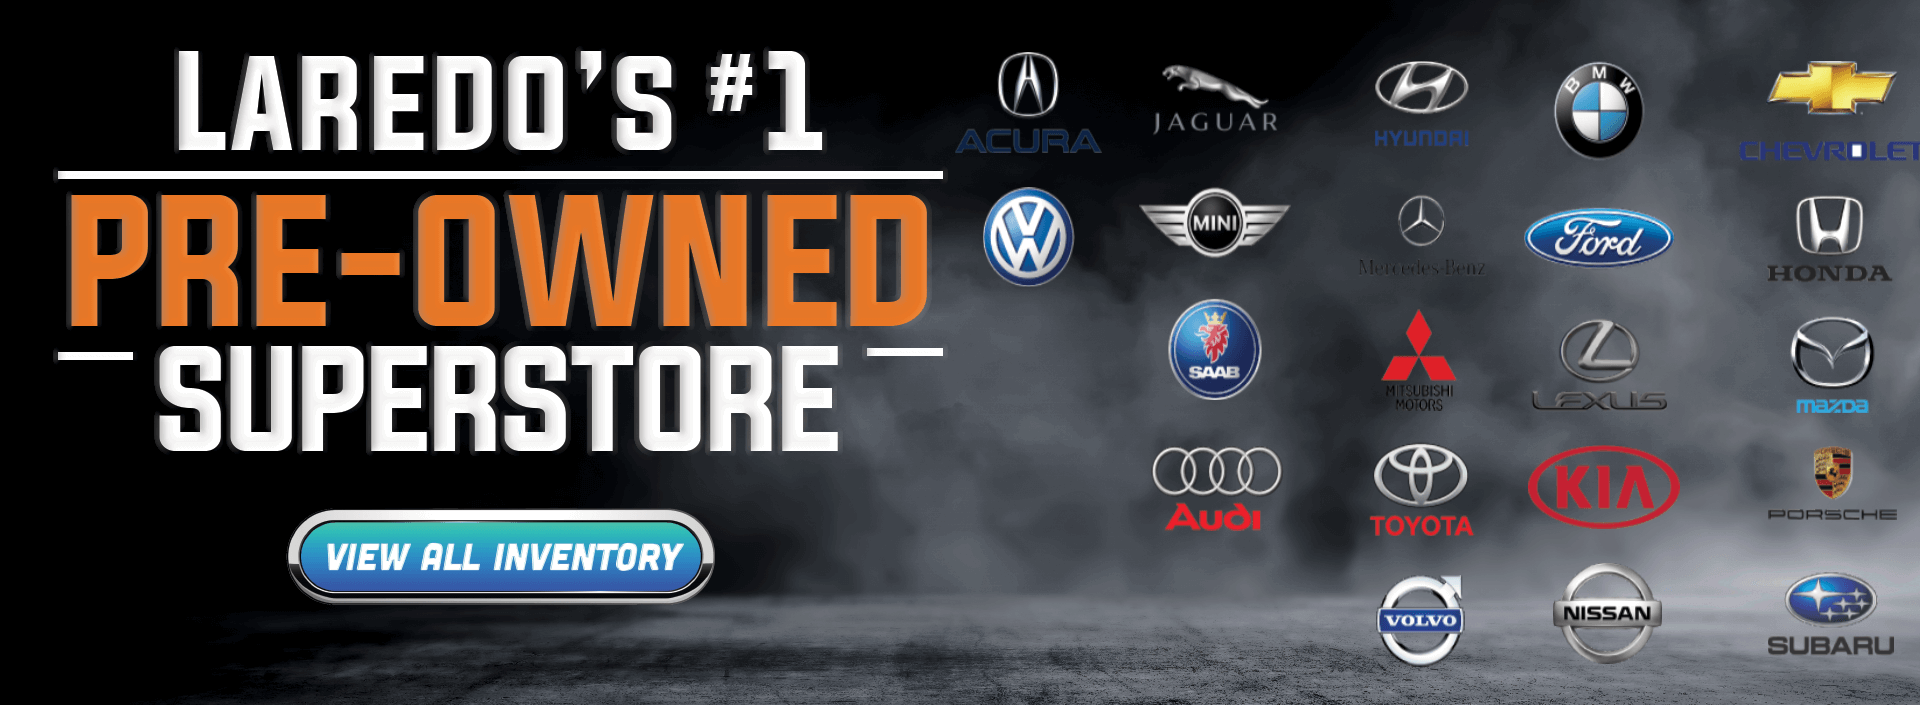 Laredo's-#1-Preowned-SuperStore